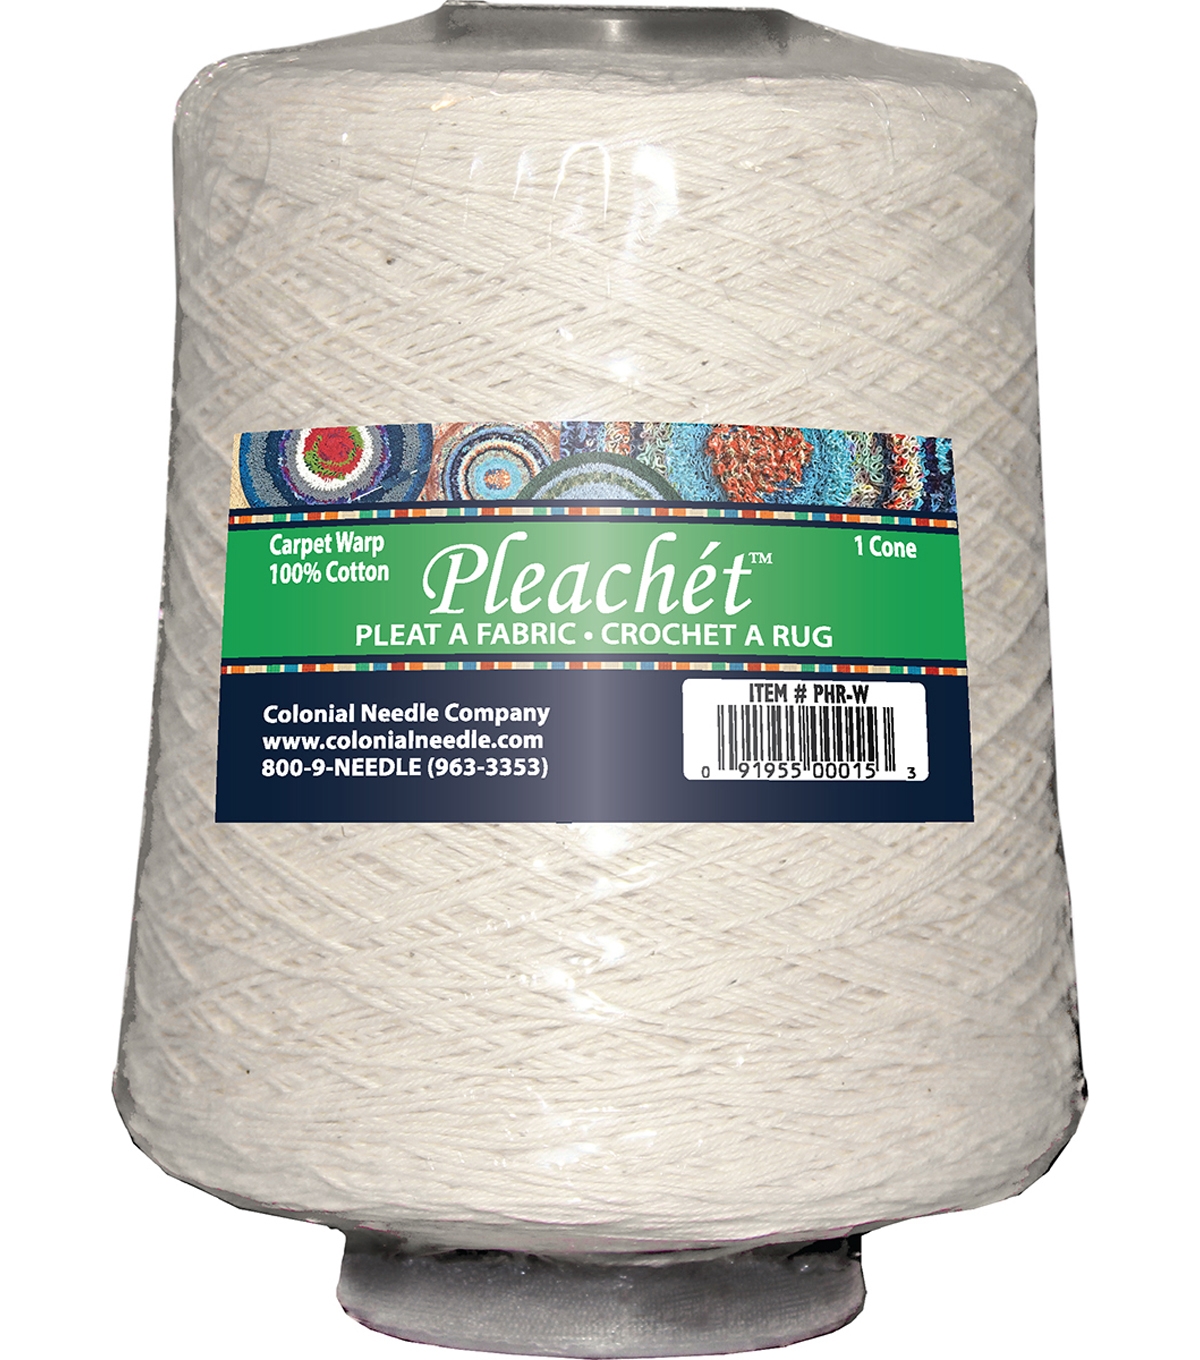 Pleachet Carpet Warp-1lb Cone